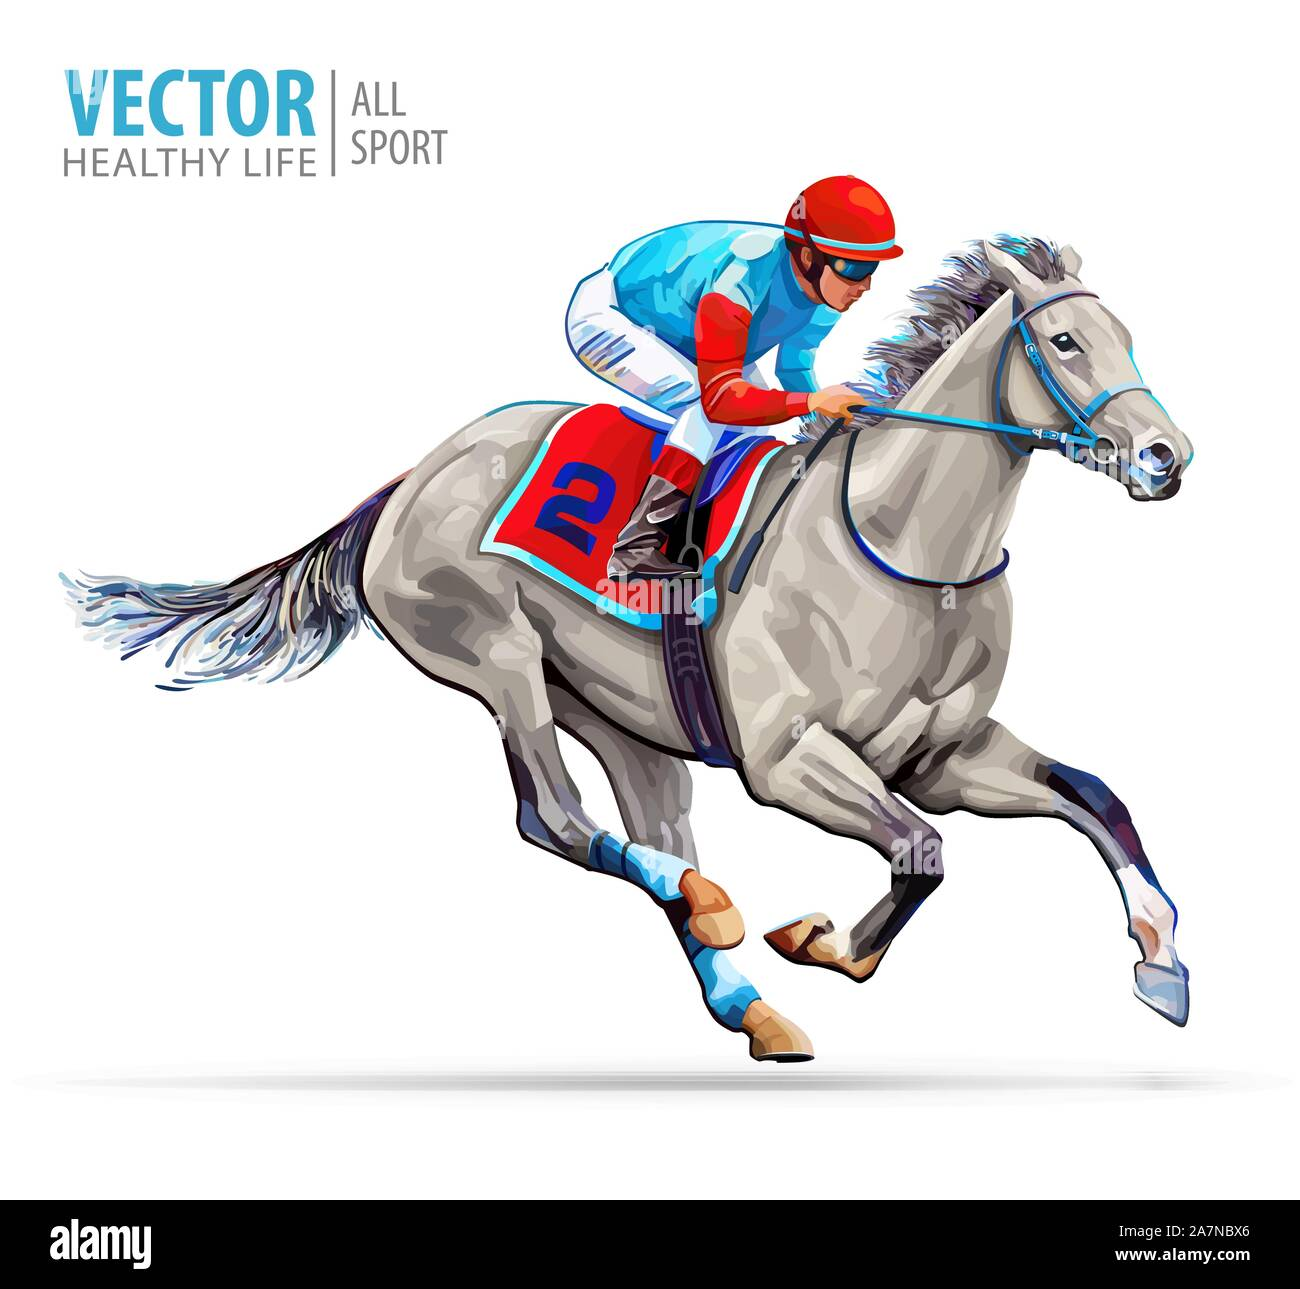 Jockey On Racing Horse Sport Champion Hippodrome Racetrack Equestrian Derby Speed Isolated On White Background Vector Illustration Stock Vector Image Art Alamy